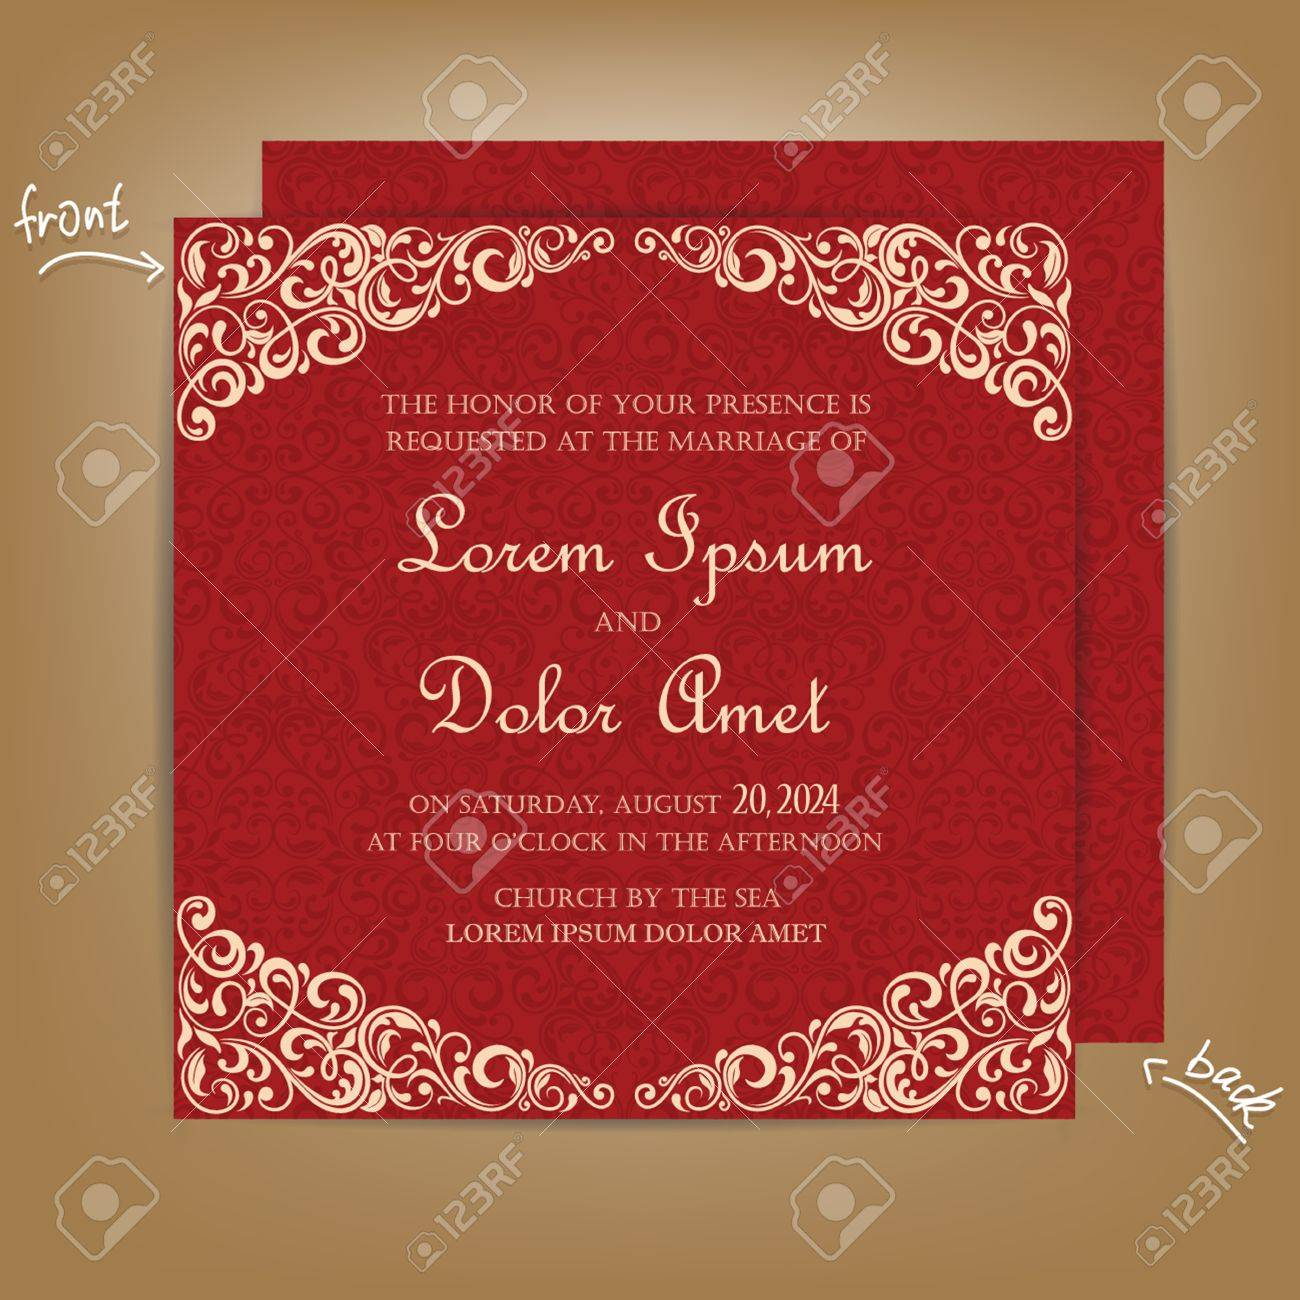 Red Vintage Wedding Invitation Card. Royalty Free Cliparts, Vectors ...